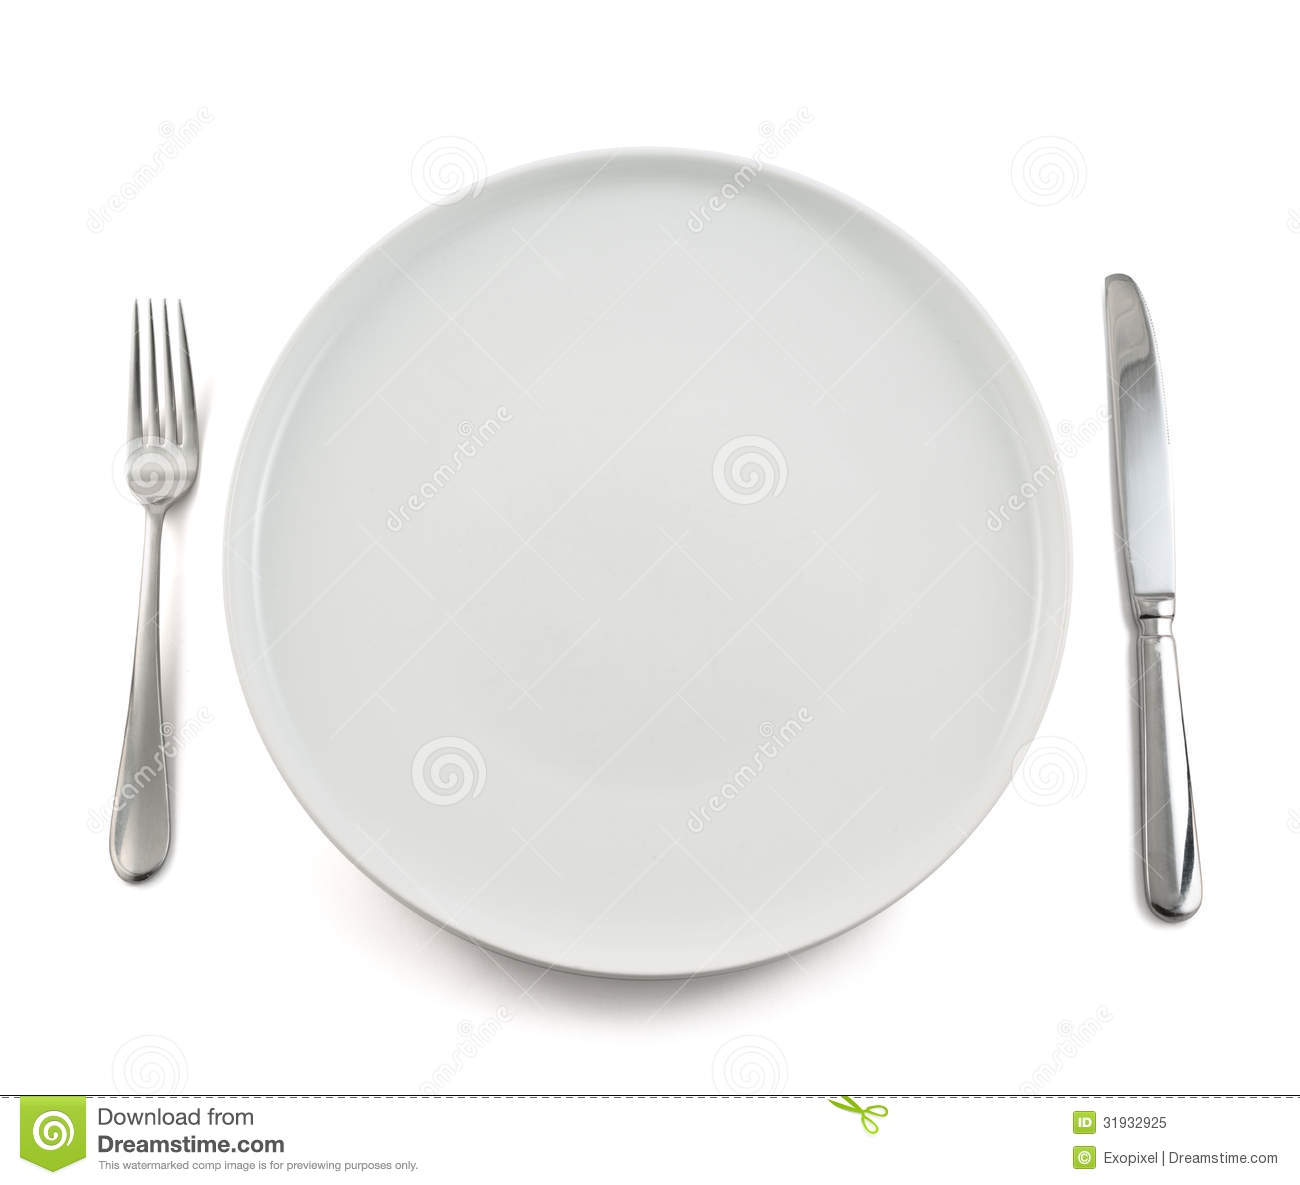 An empty white dish with knife and fork on a table - Background Ceramic Dinner Dish Empty Fork Isolated Knife Plate Table Top View White